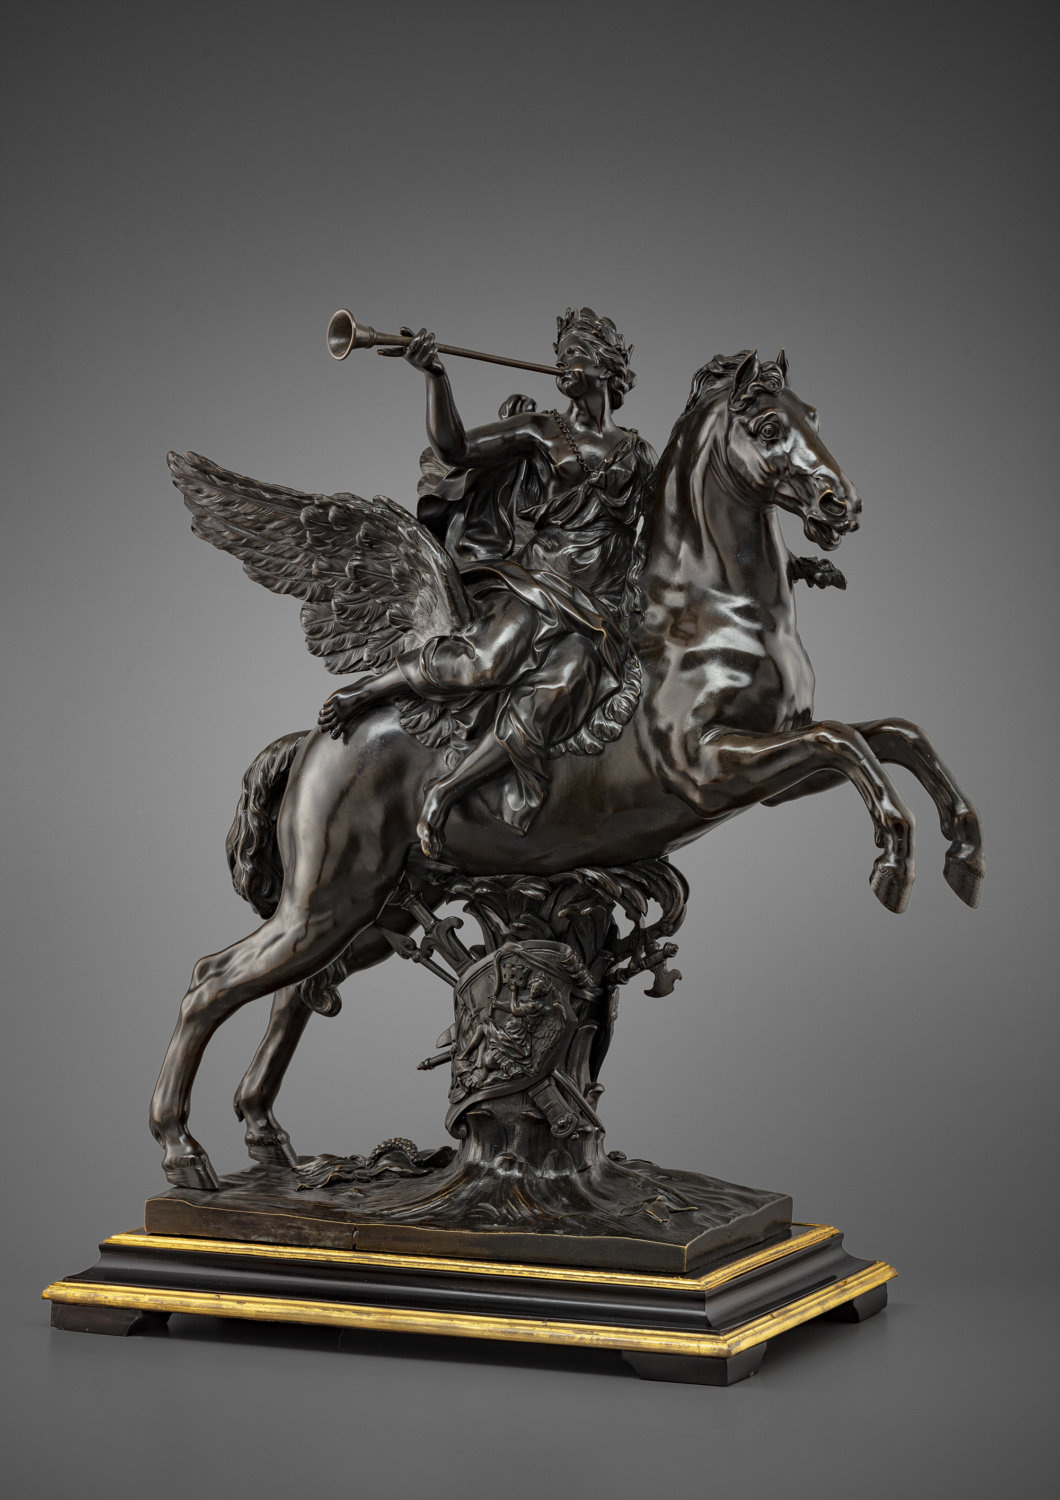 Two Louis XIV patinated bronze groups - Galerie Kugel